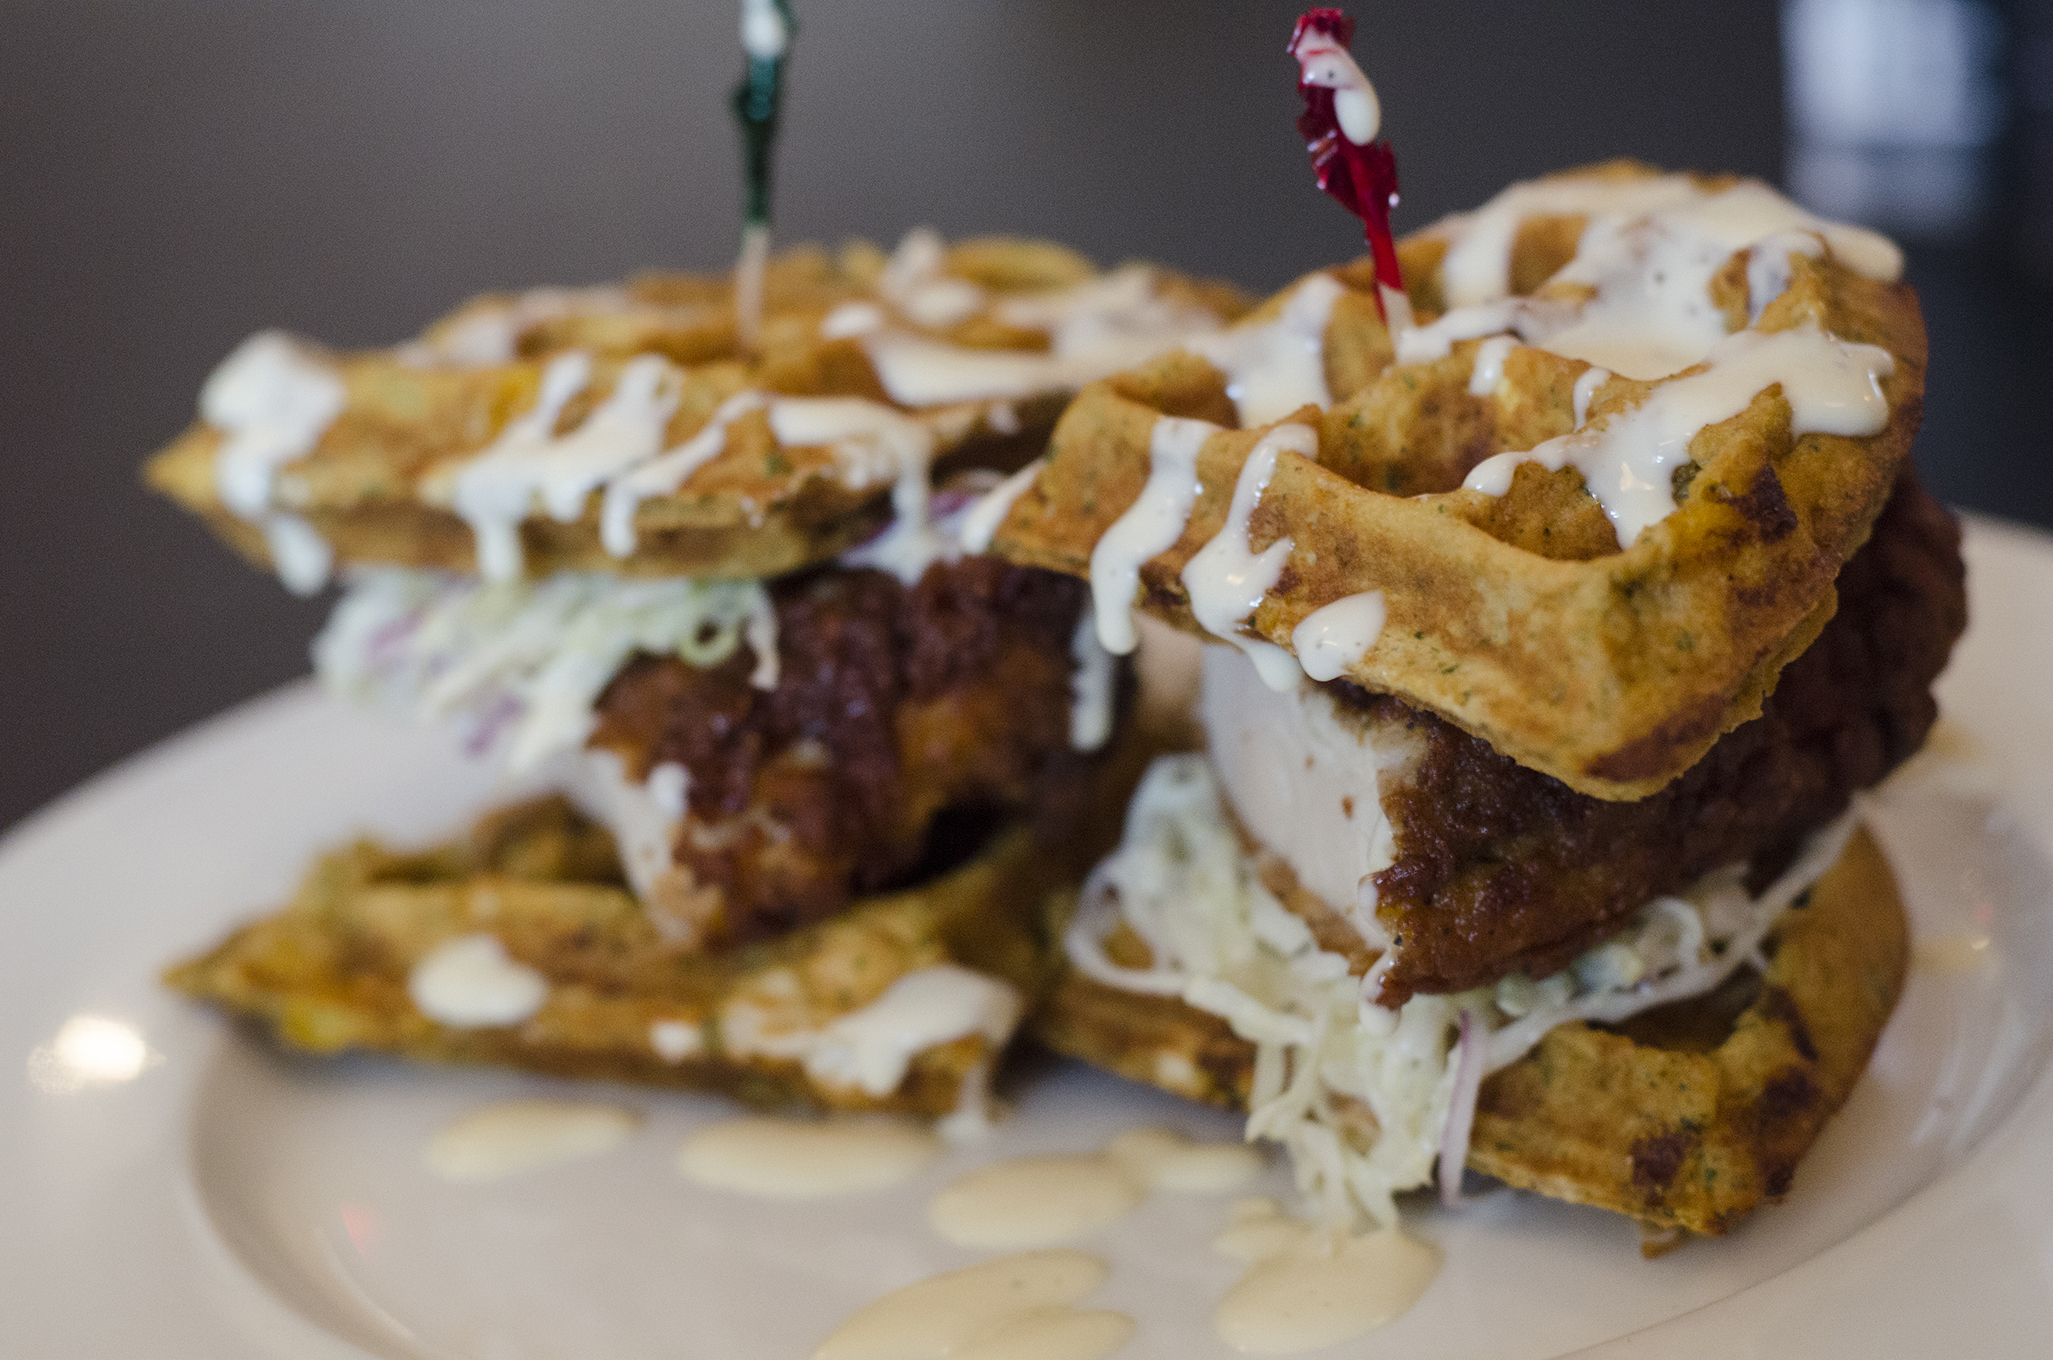 Fried Chicken & Waffle Sliders from Nola's in Windsor, Ontario.